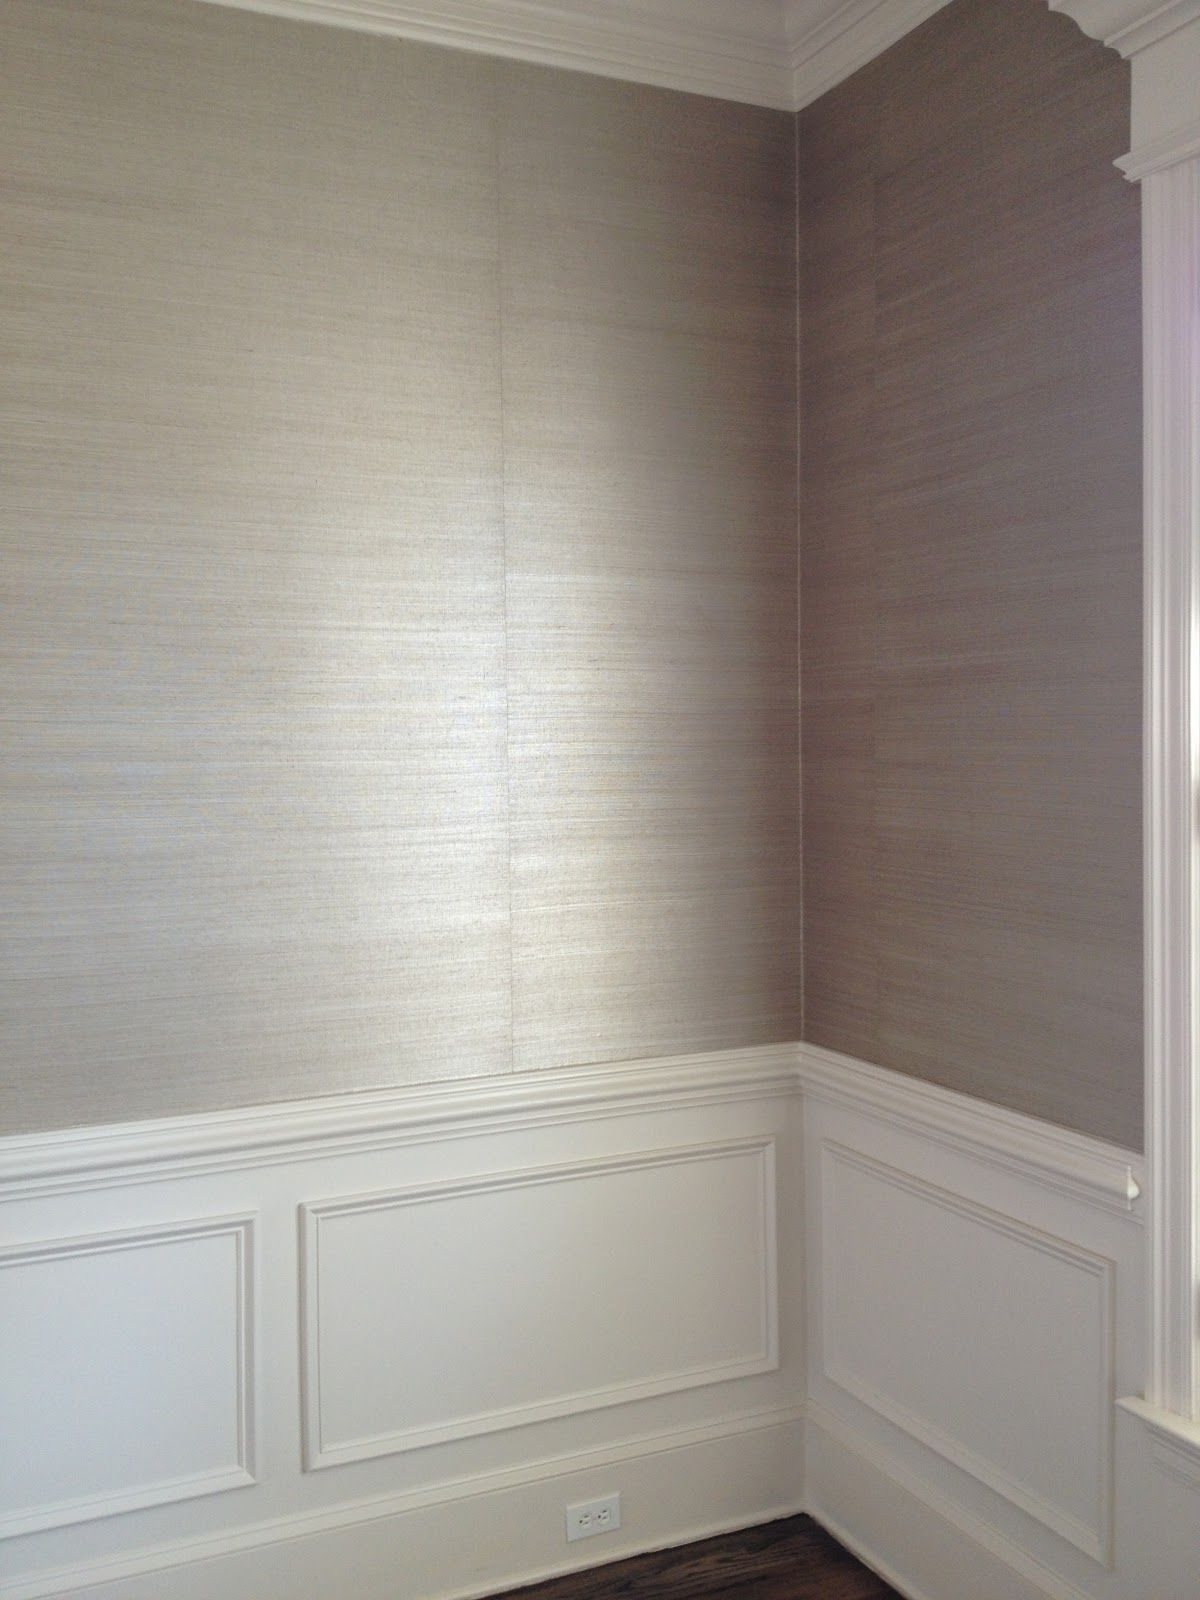 Metallic Grassclothit Comes In Different Colorsit Adds Sheen Alluring Wainscoting For Dining Room Inspiration Design